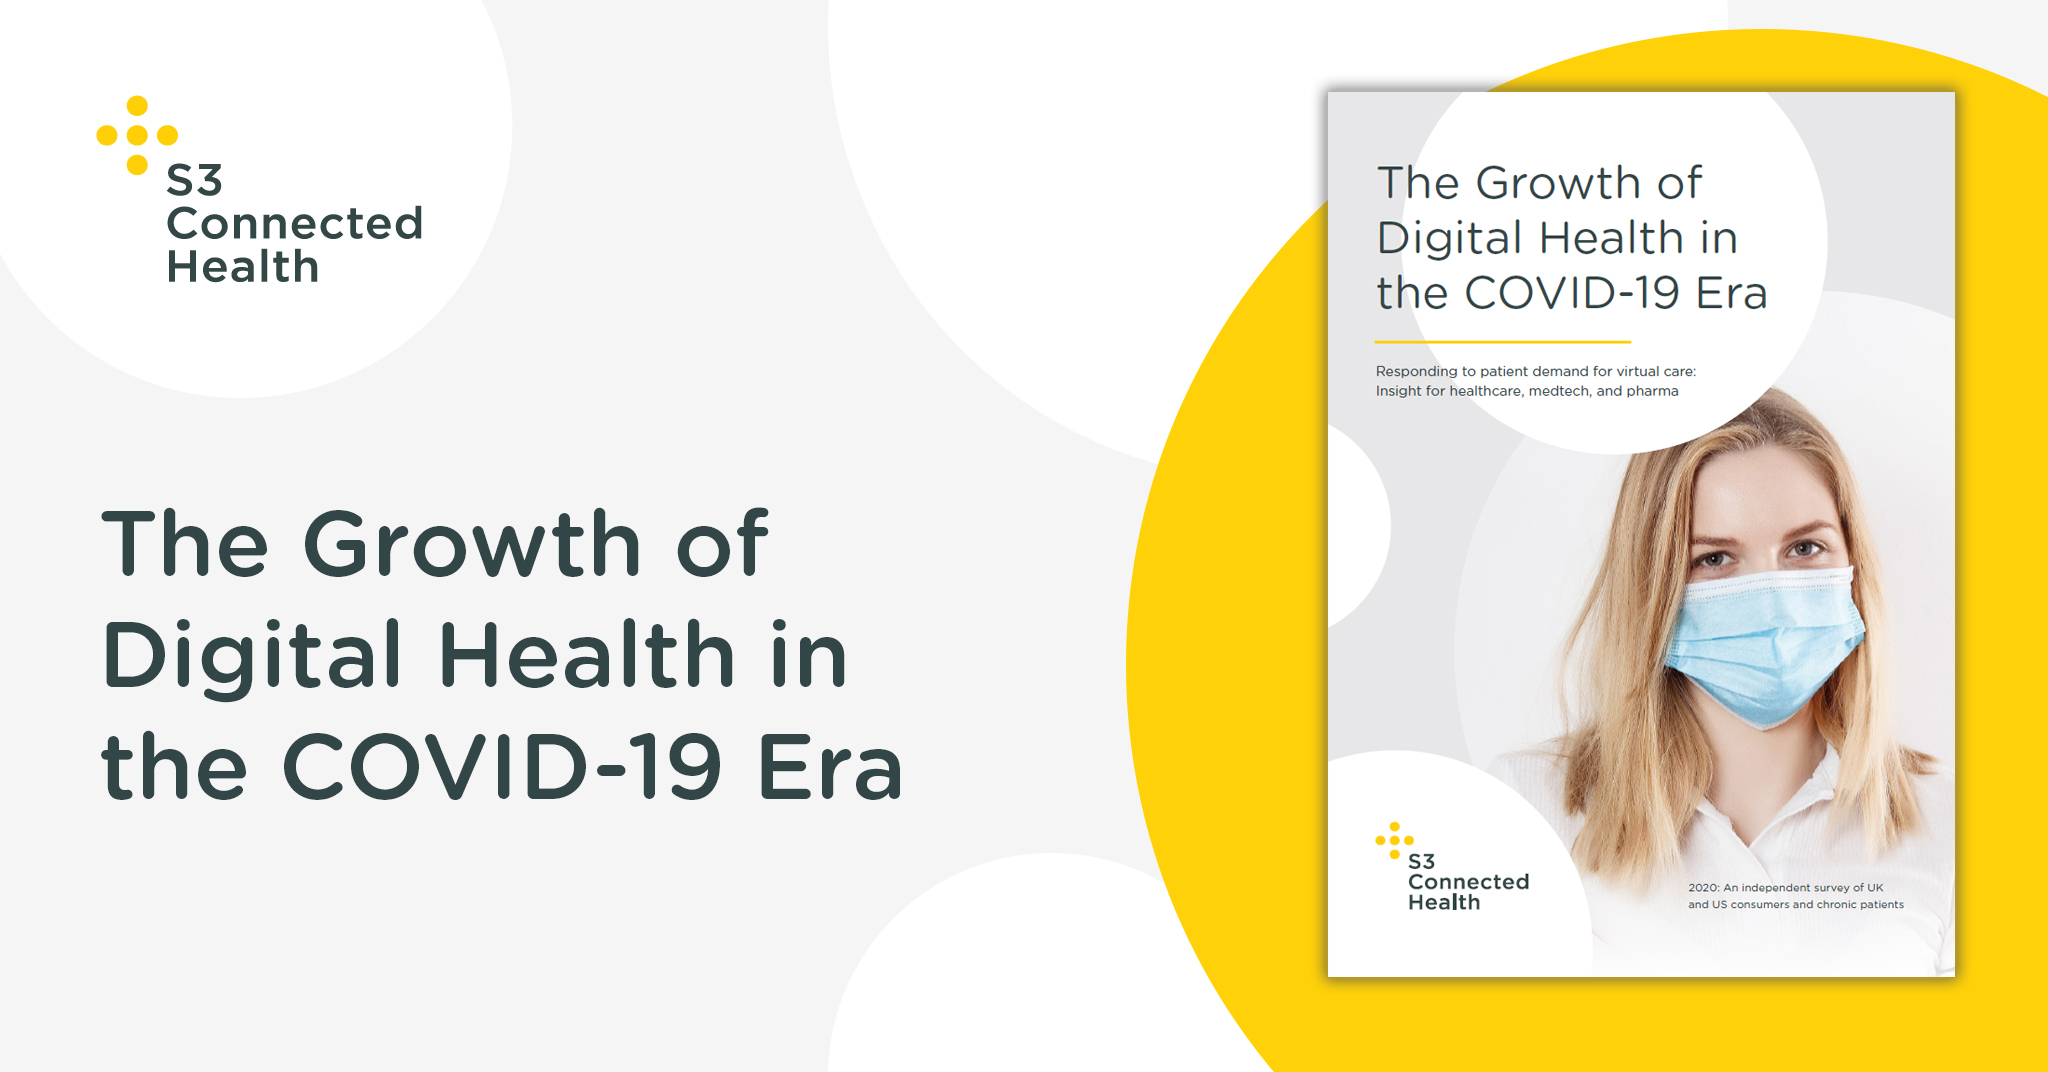 Research shows the COVID-19 pandemic is heralding a new era of digital health